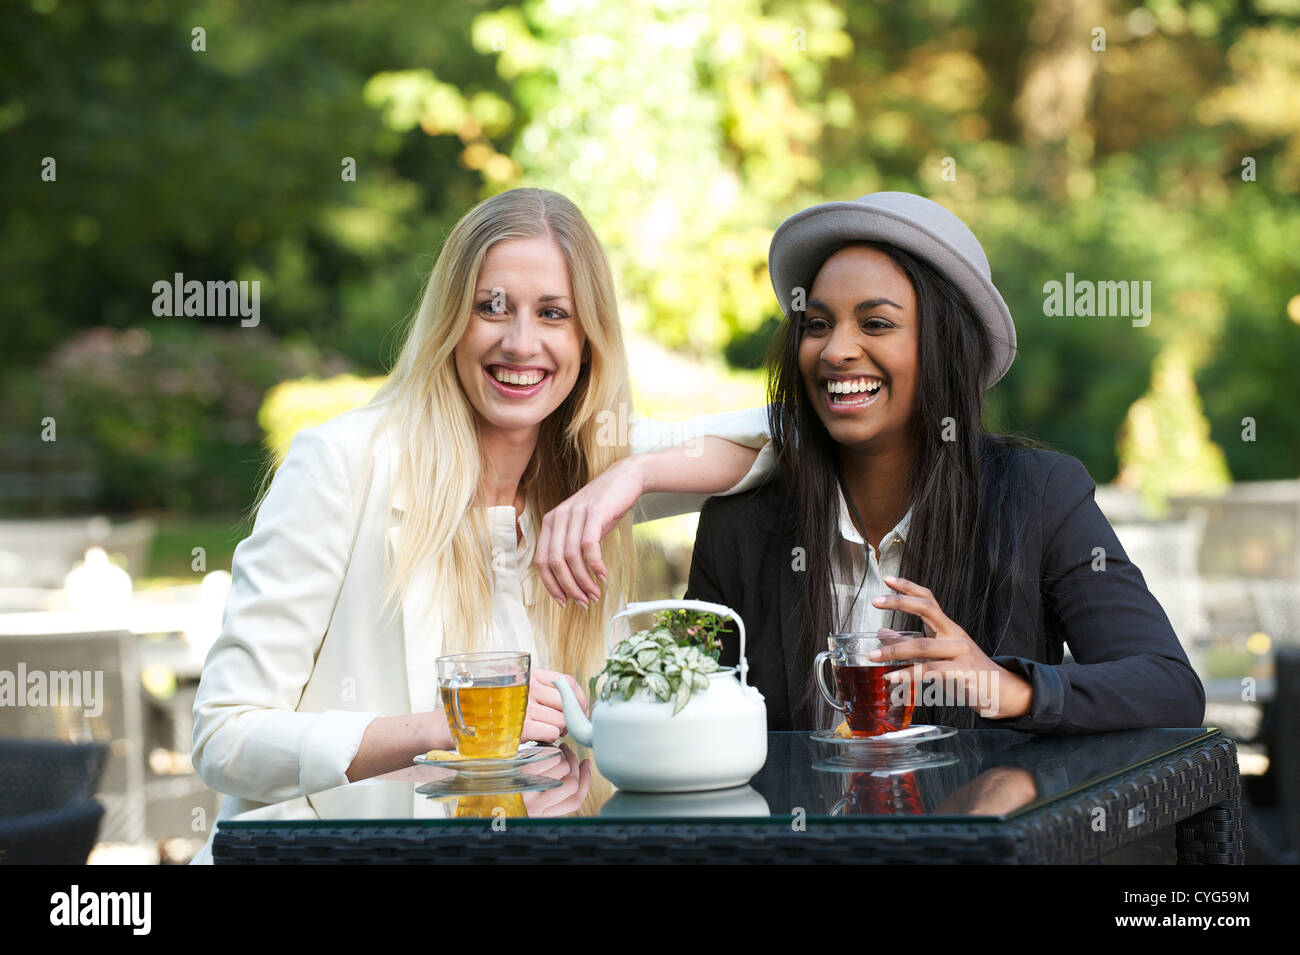 Two young women friends drinking tea outdoors and having a good time - Stock Image